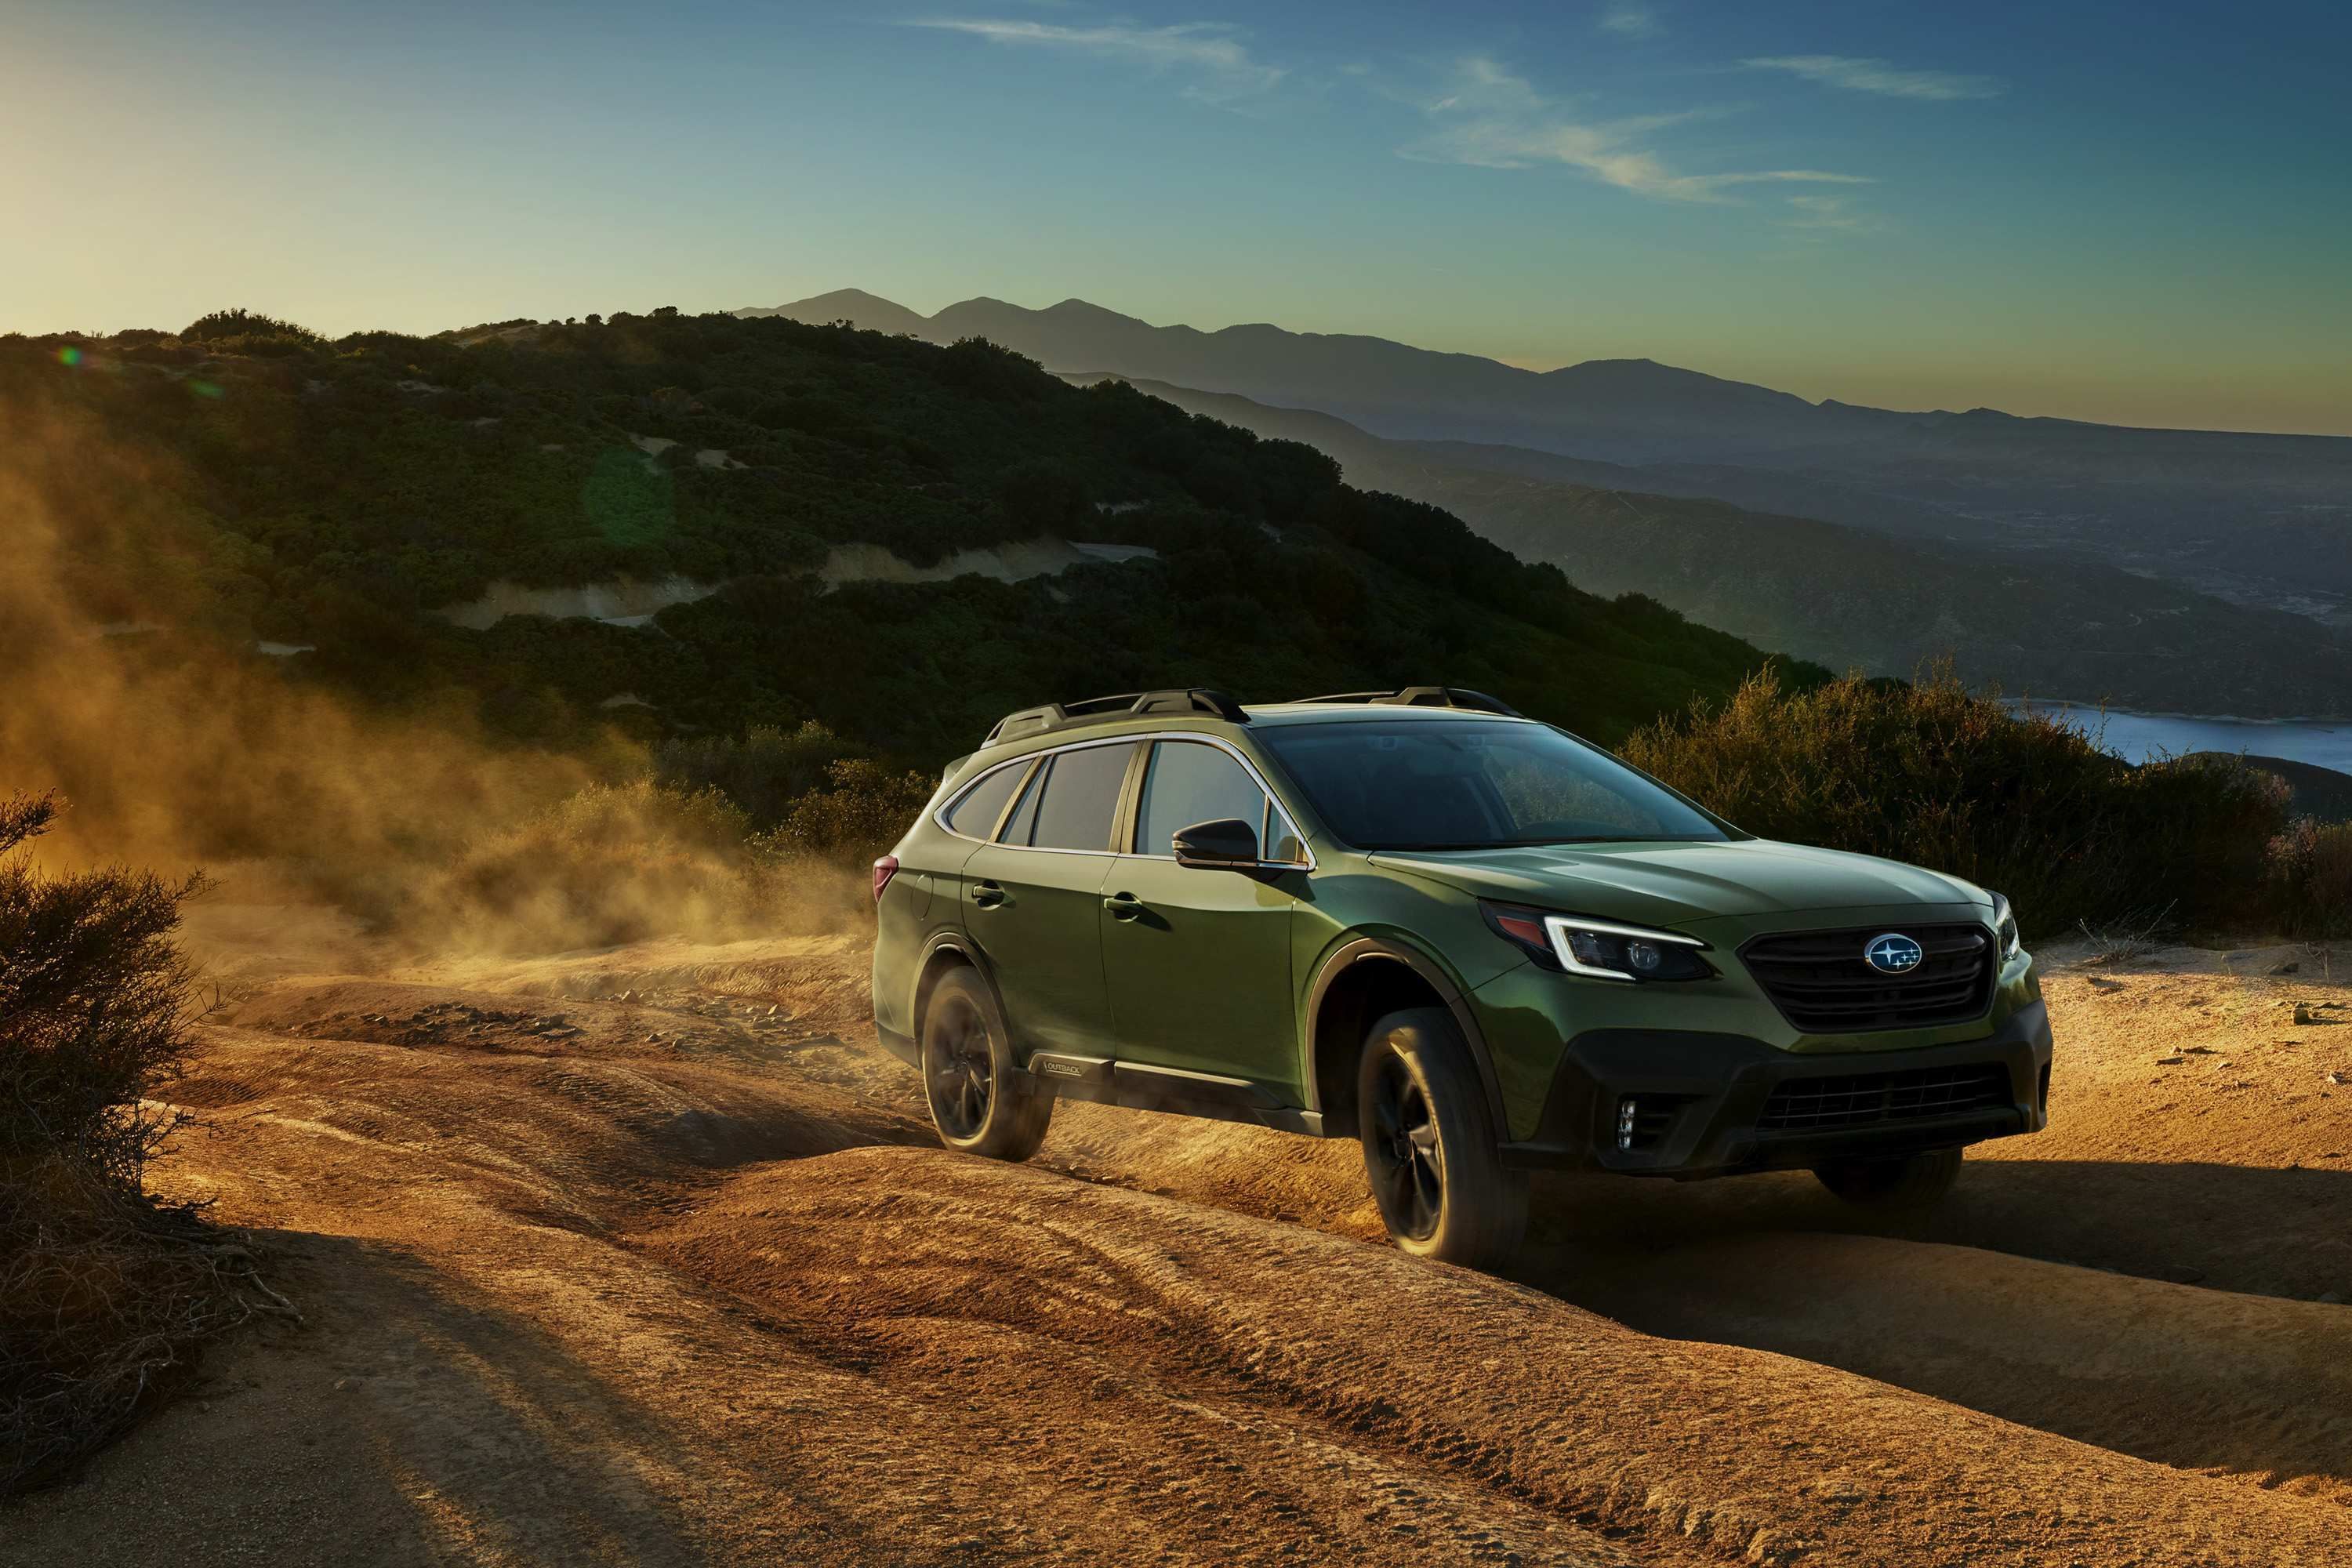 41 Best Subaru Outback Update 2020 Images